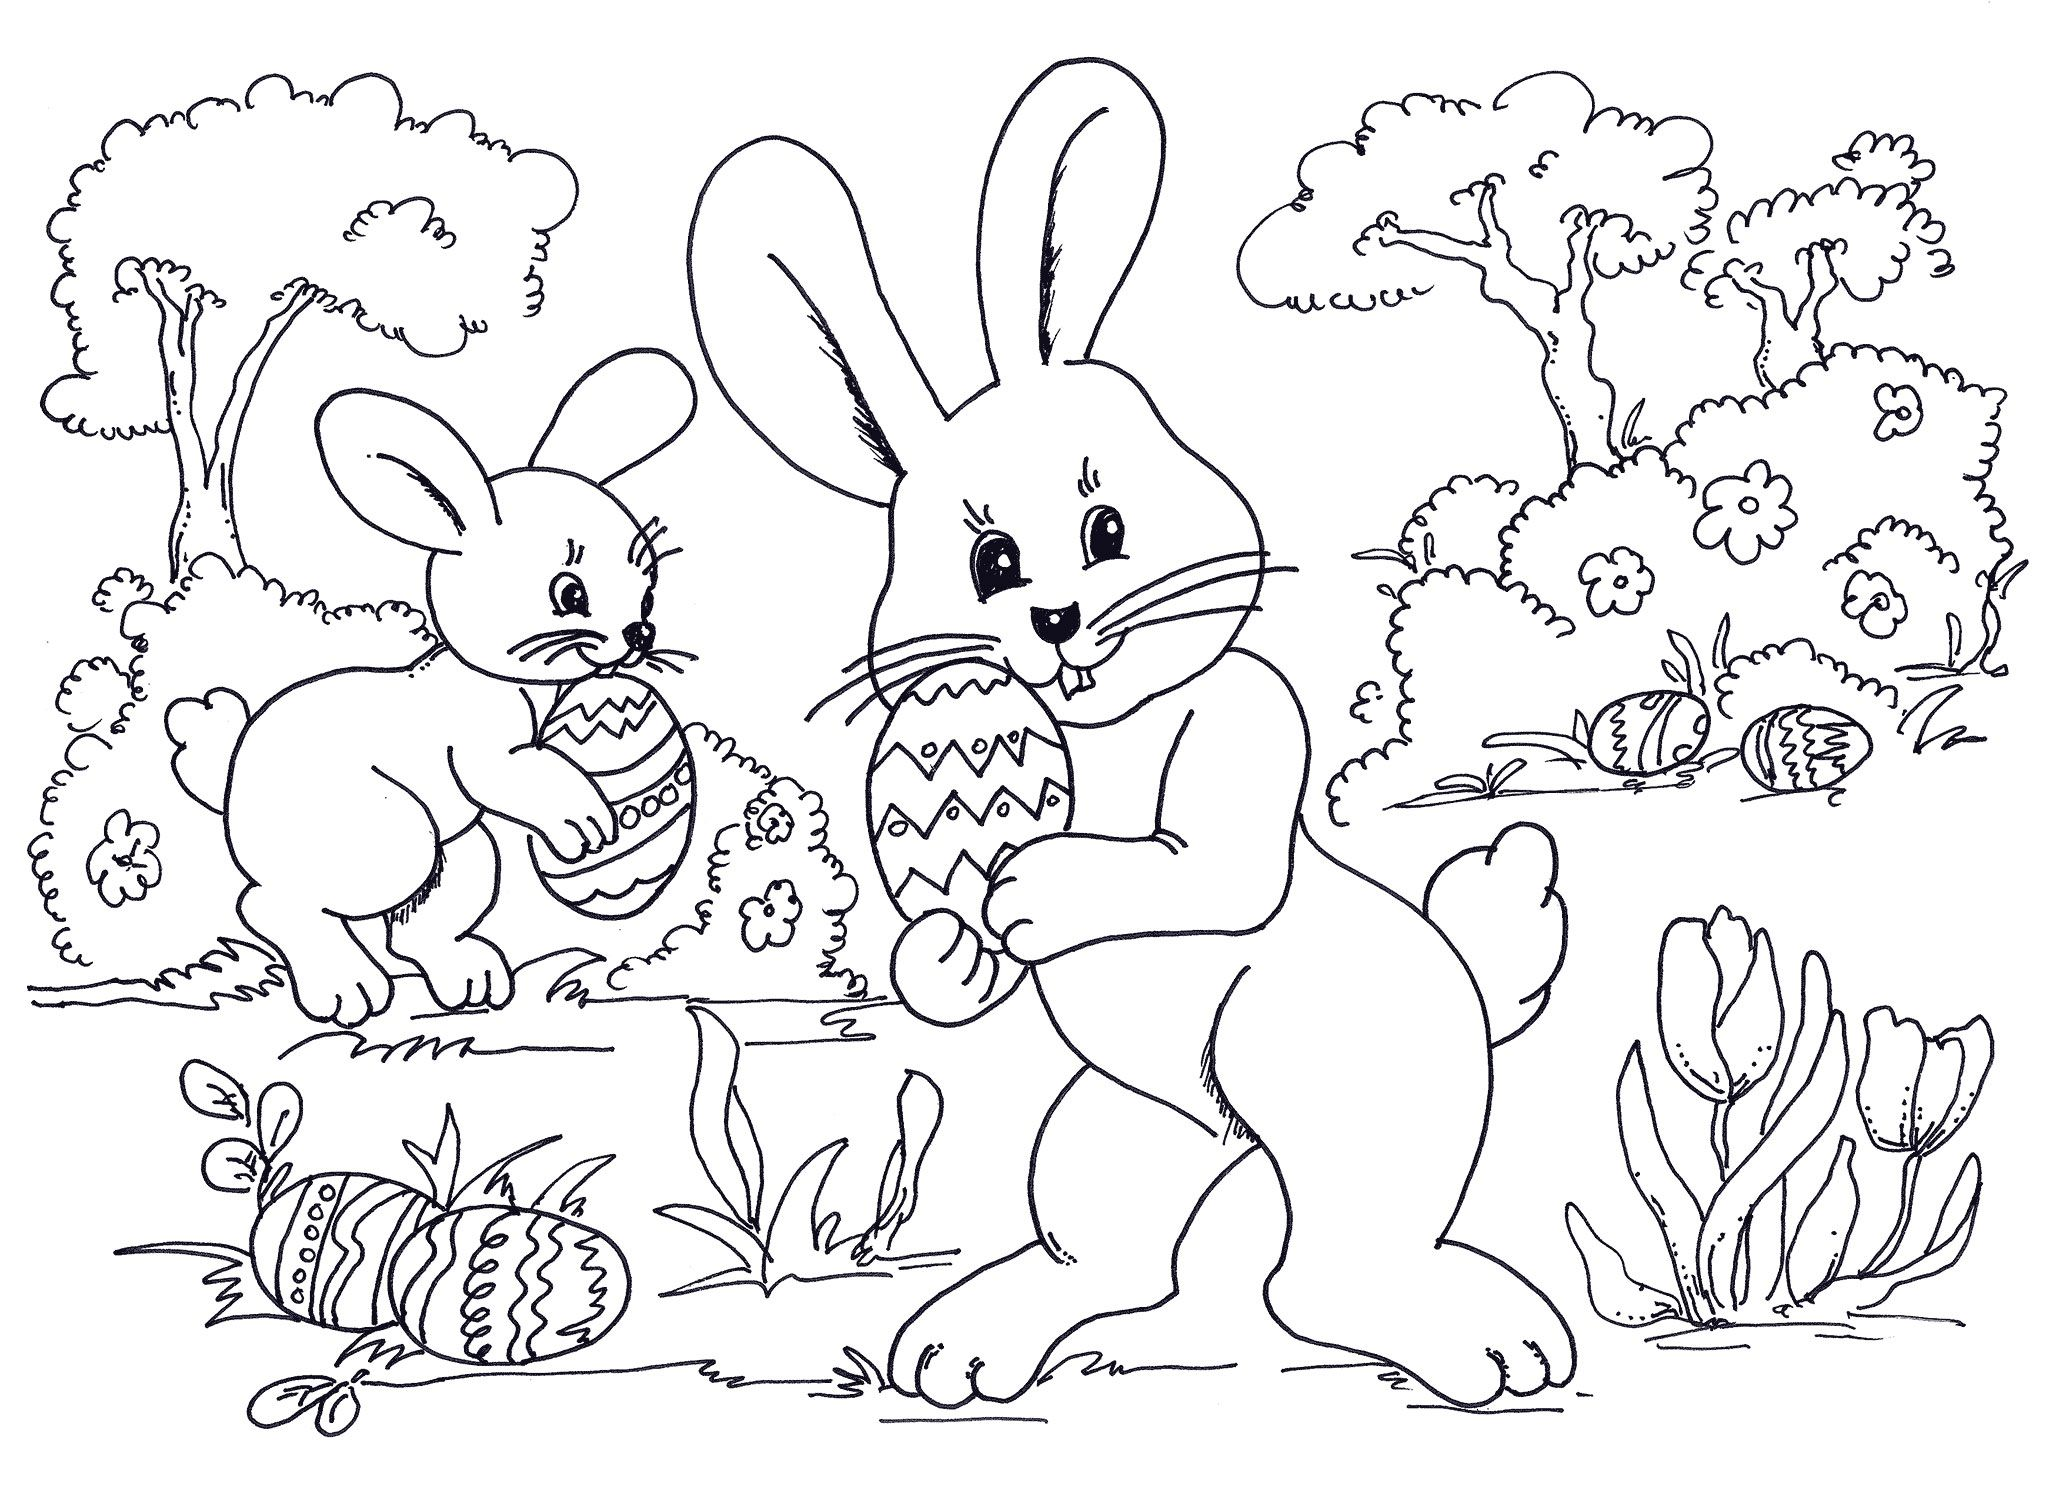 Happy Easter Coloring Pages Great pdf to print - Coloring pages